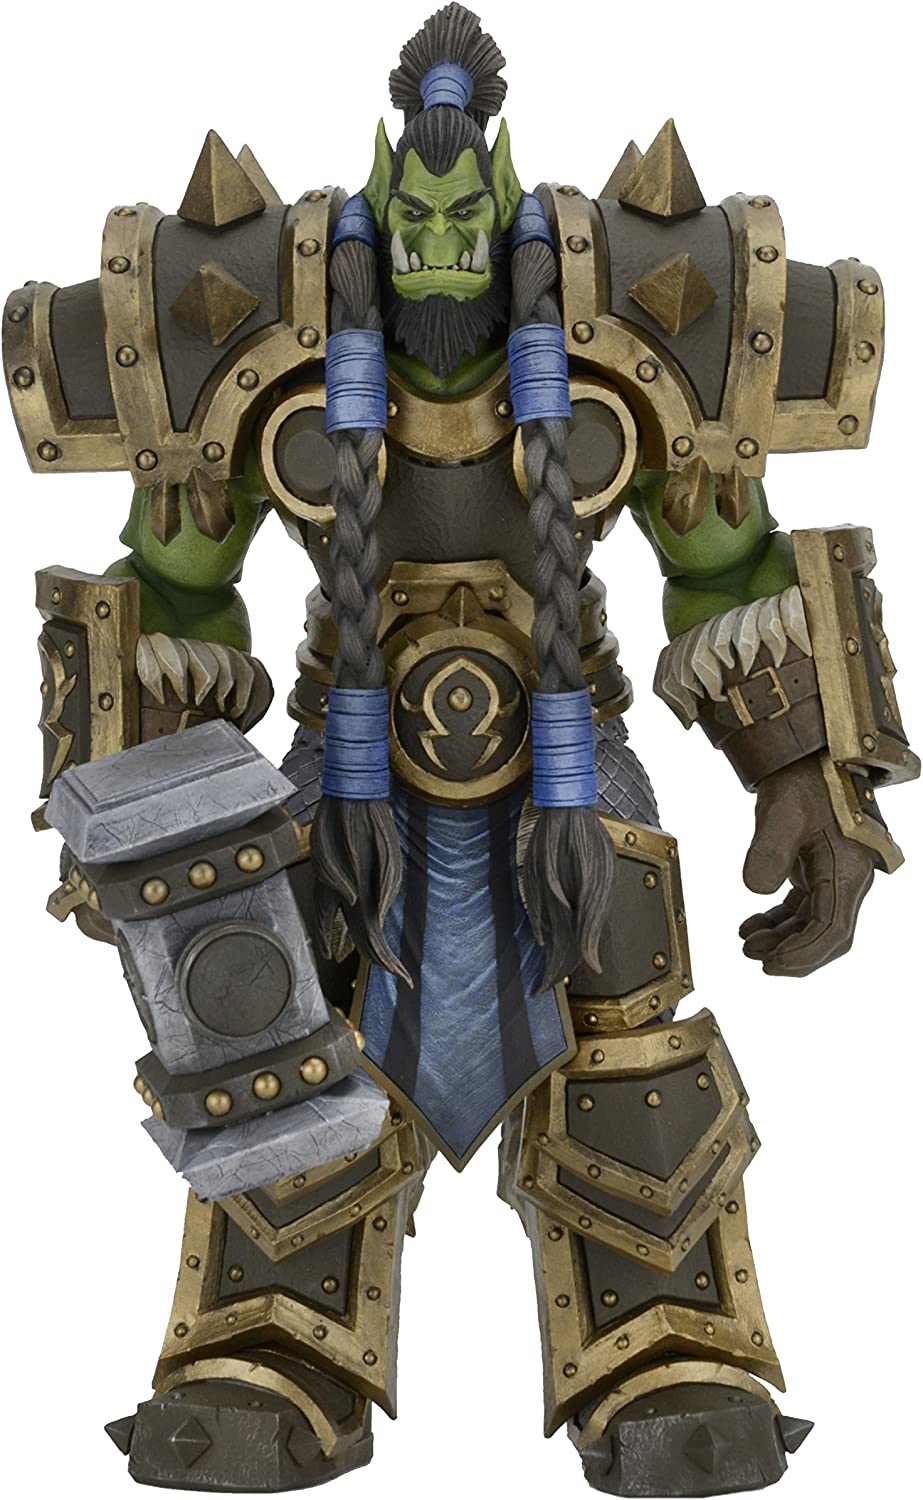 NECA 45412 Entertainment Blizzard's Heroes of The Storm Thrall Action Figure, Multicolord, 17 cm